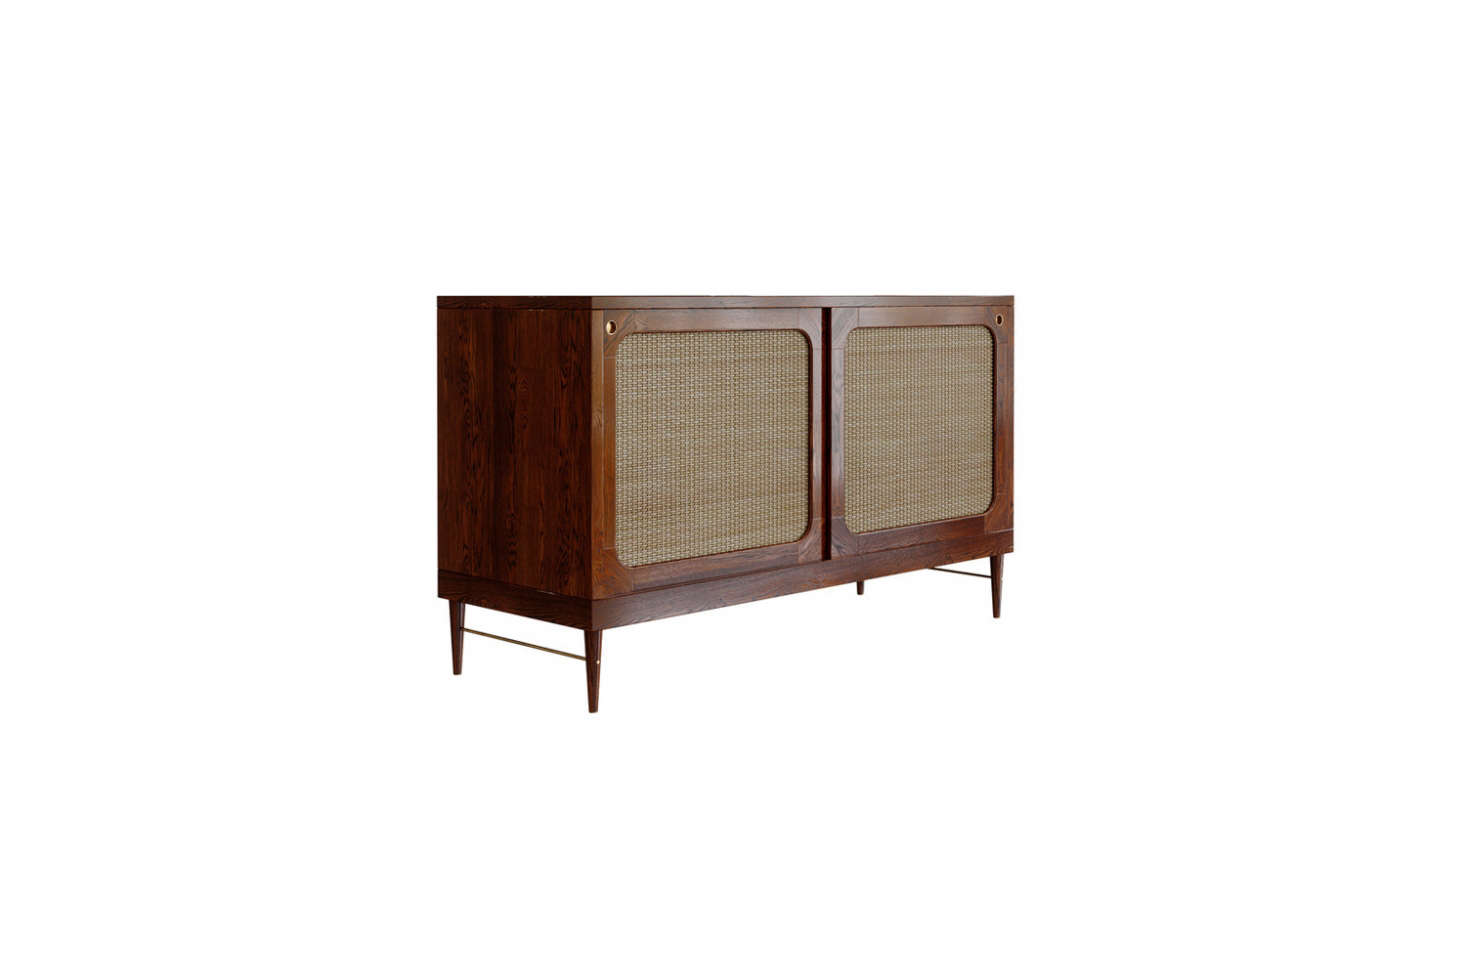 Lind & Almond's A Sideboard for Sanders is made of European oak (also available in chestnut) and rattan. Contact Lind & Almond for ordering information.